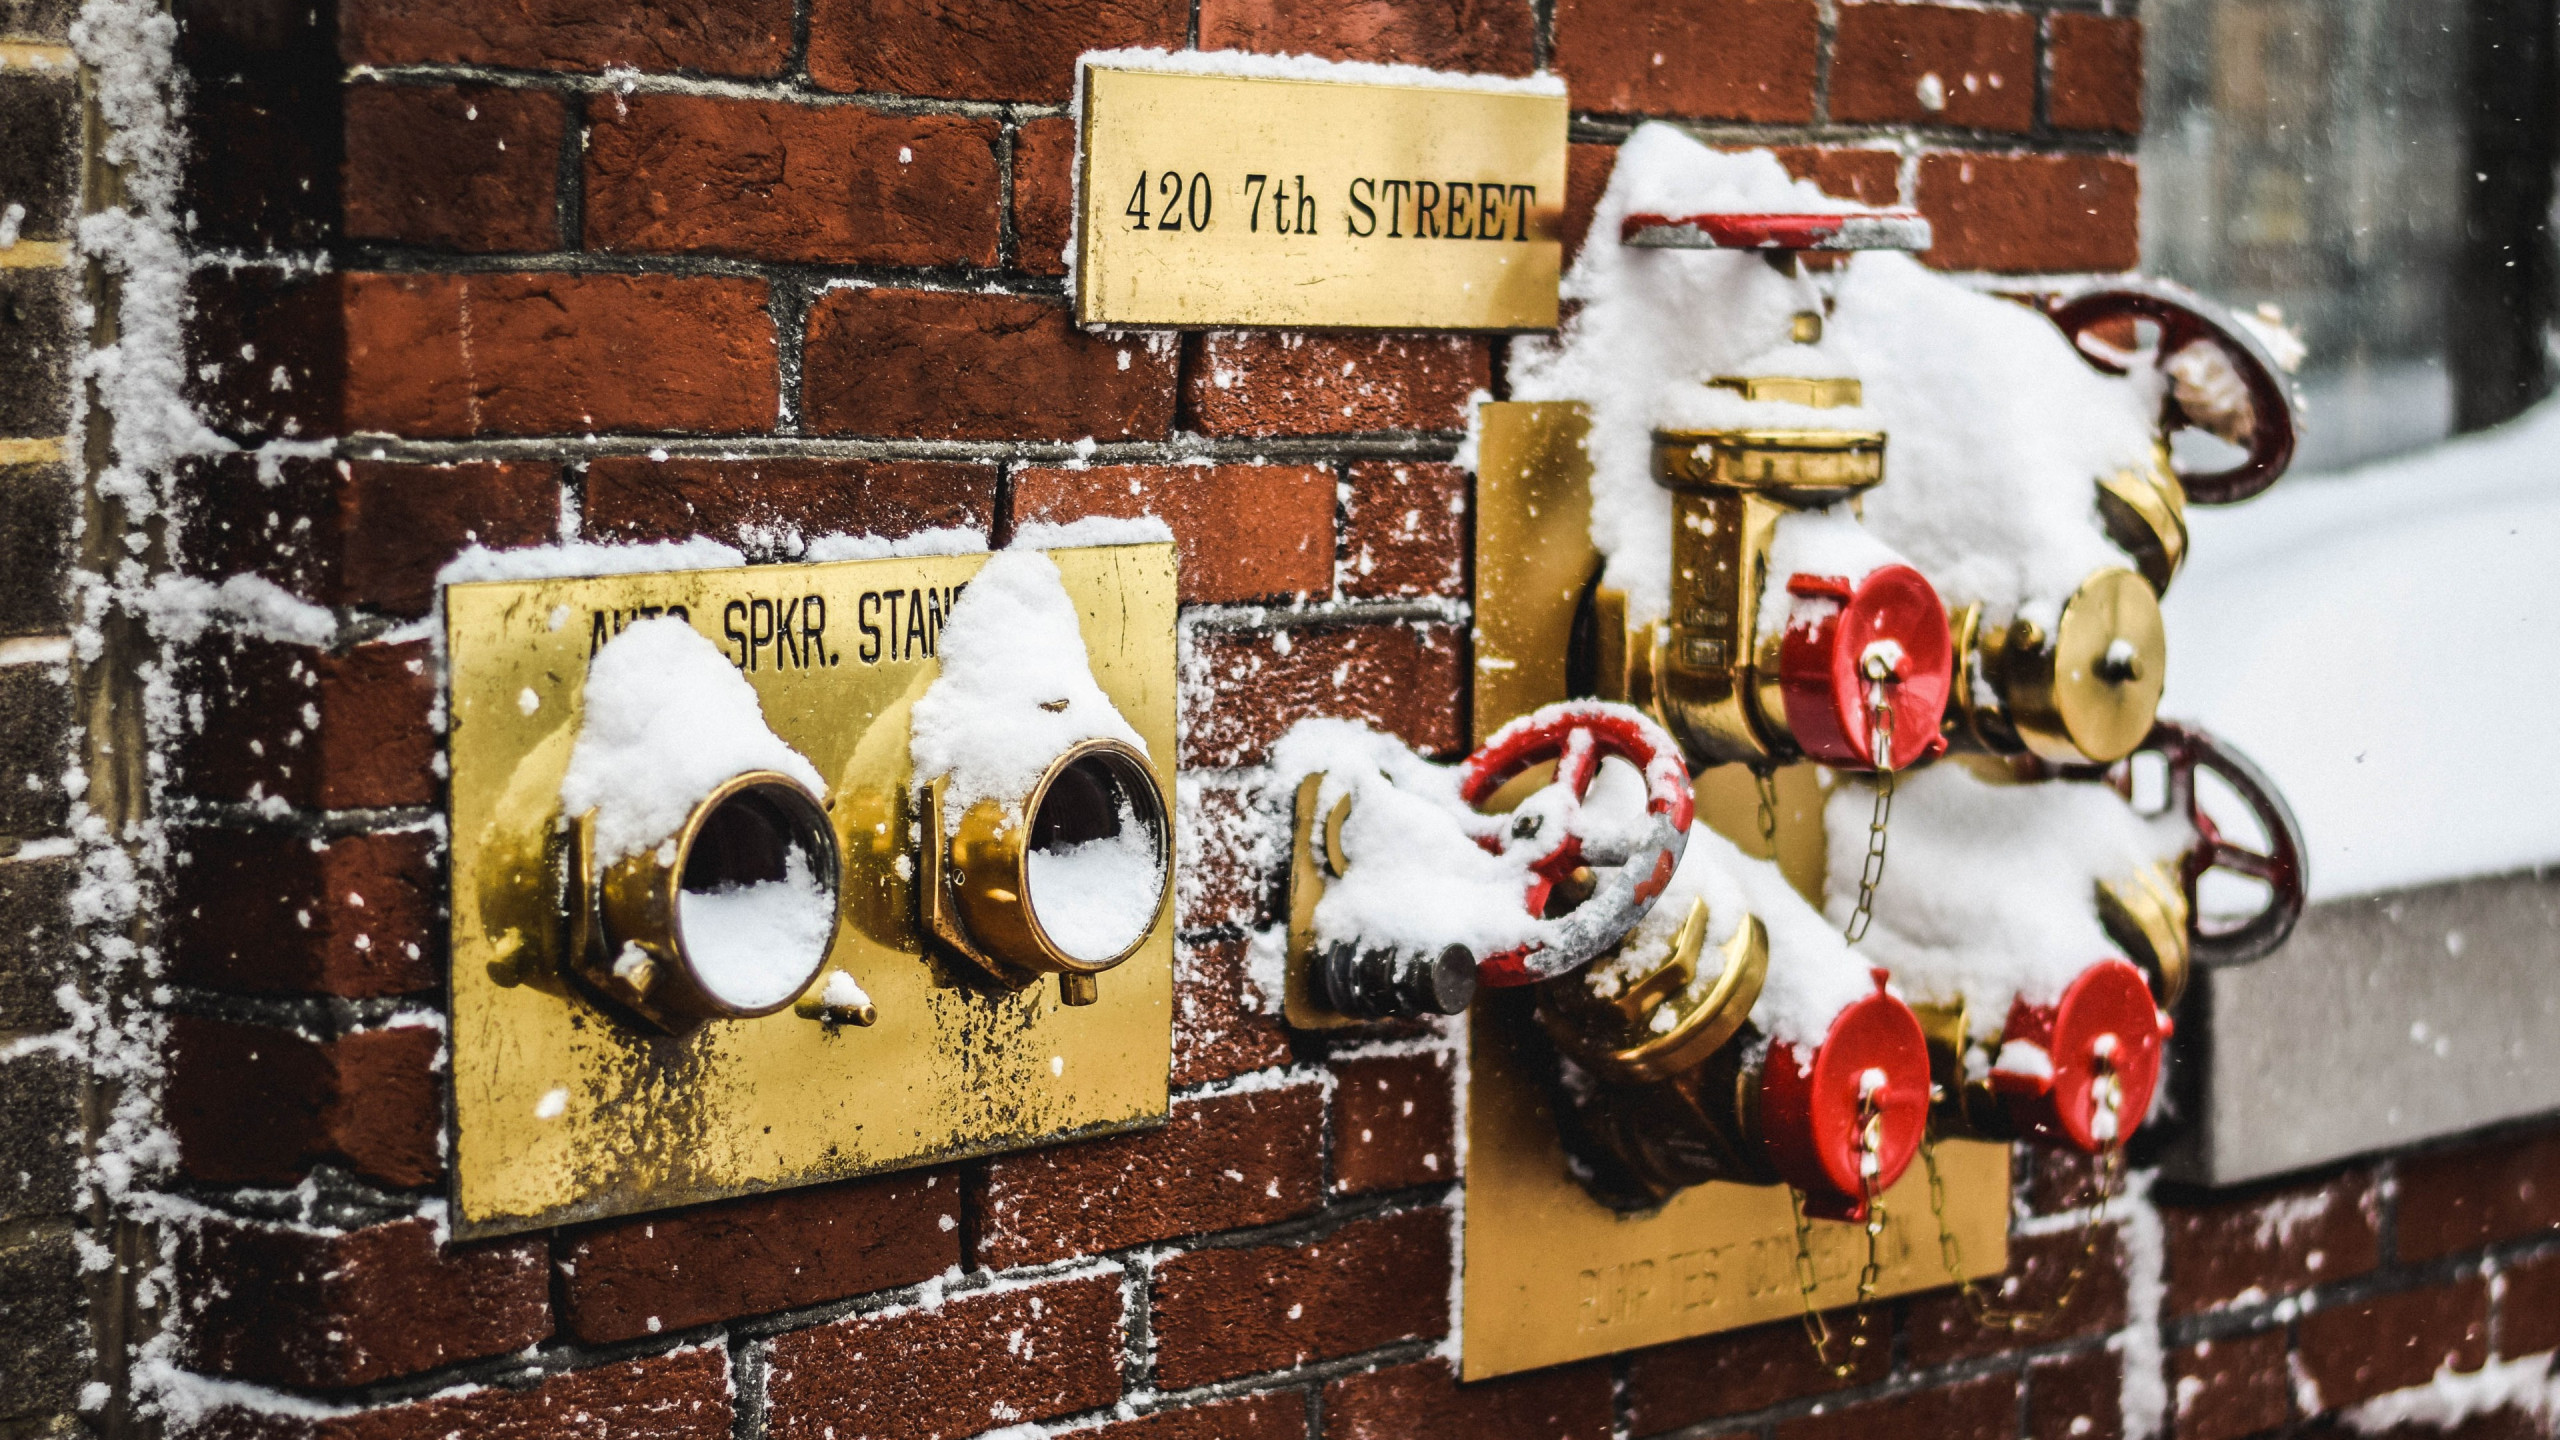 Snow covered fire standpipes in Washington | 2560x1440 wallpaper